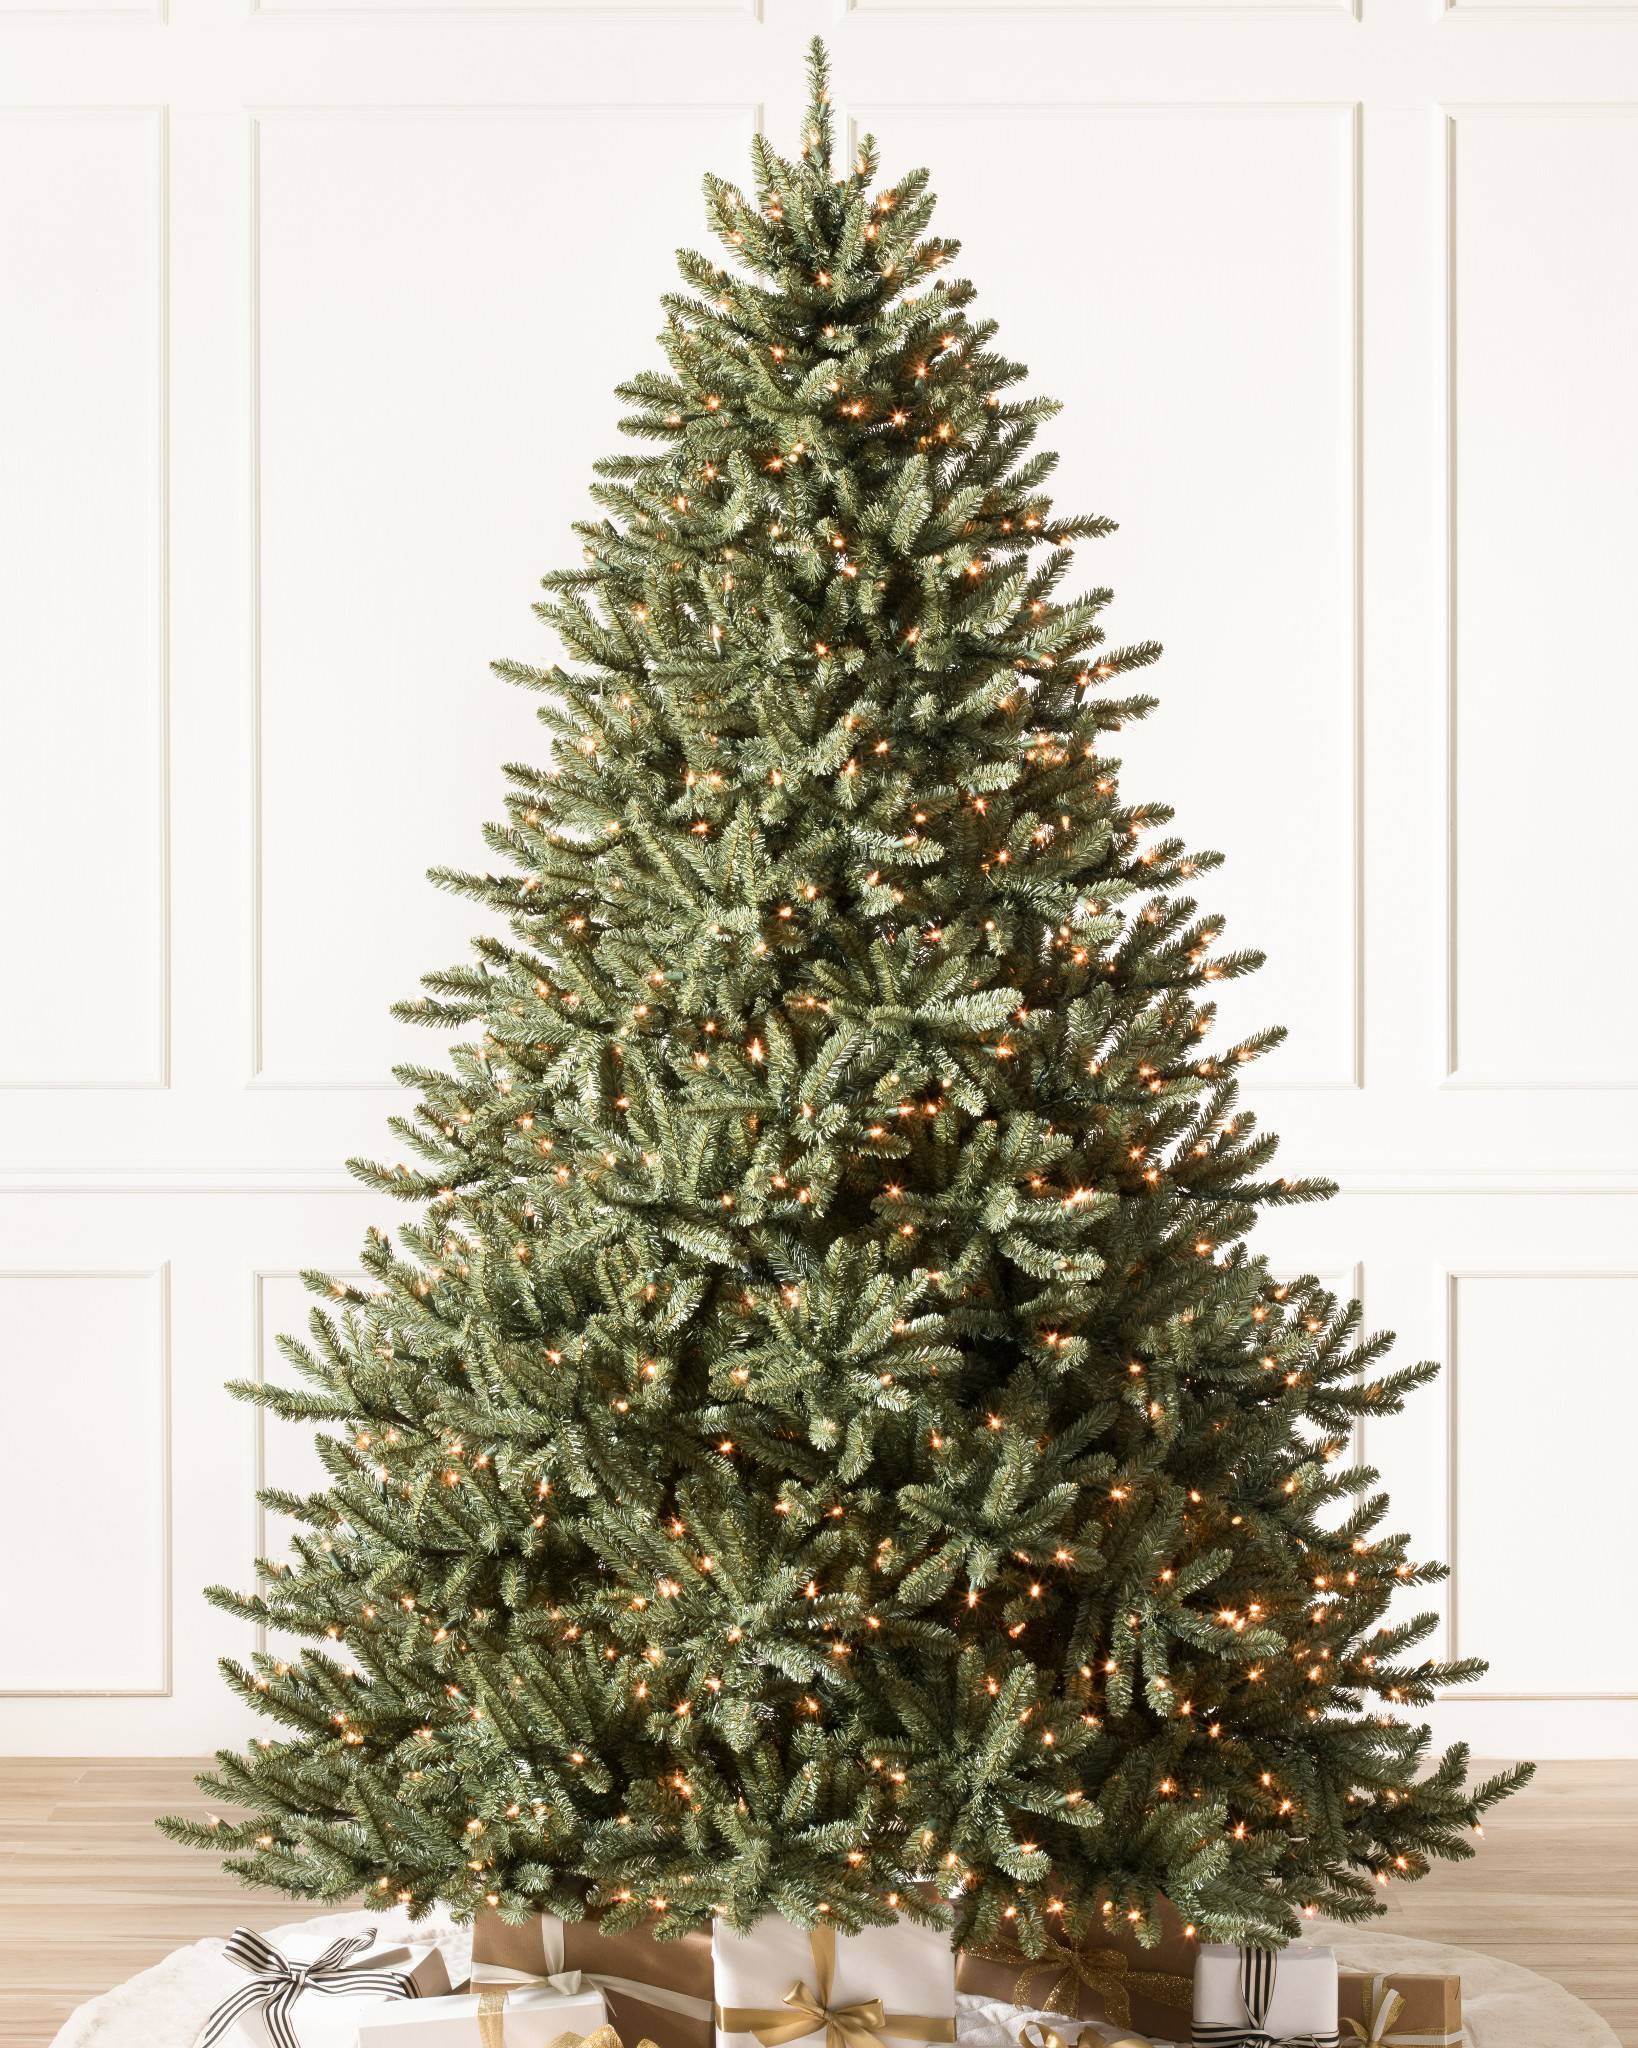 Shop CLASSIC BLUE SPRUCE from Balsam Hill on Openhaus